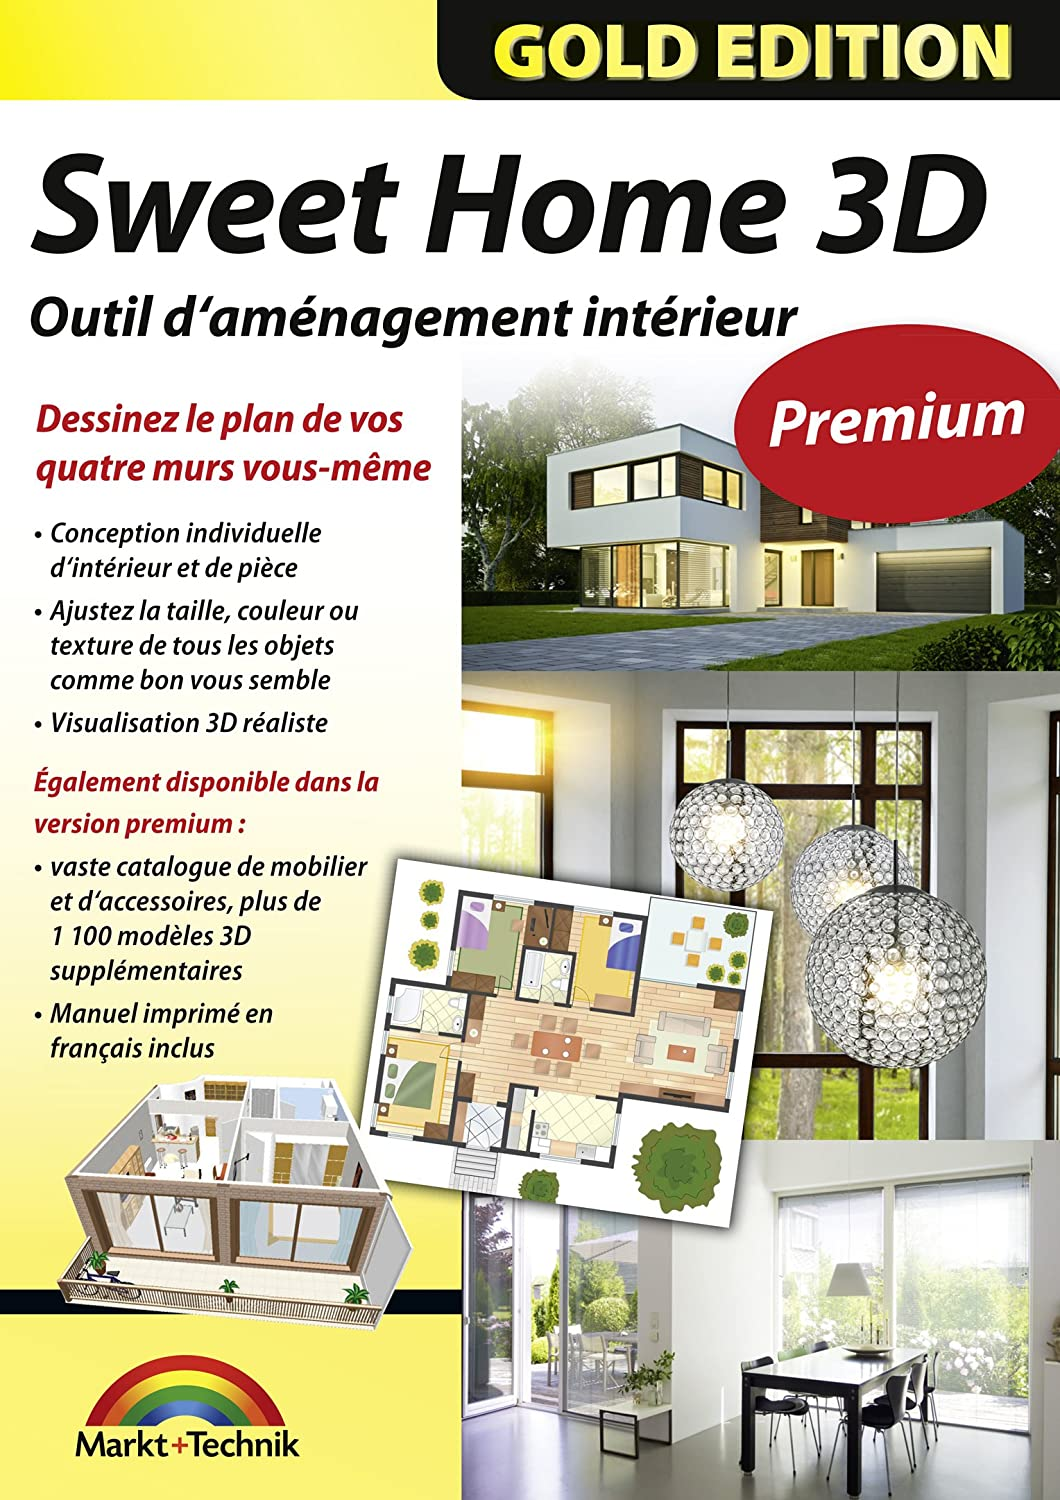 Logiciel architecte 3d professionnel for Modele maison sweet home 3d